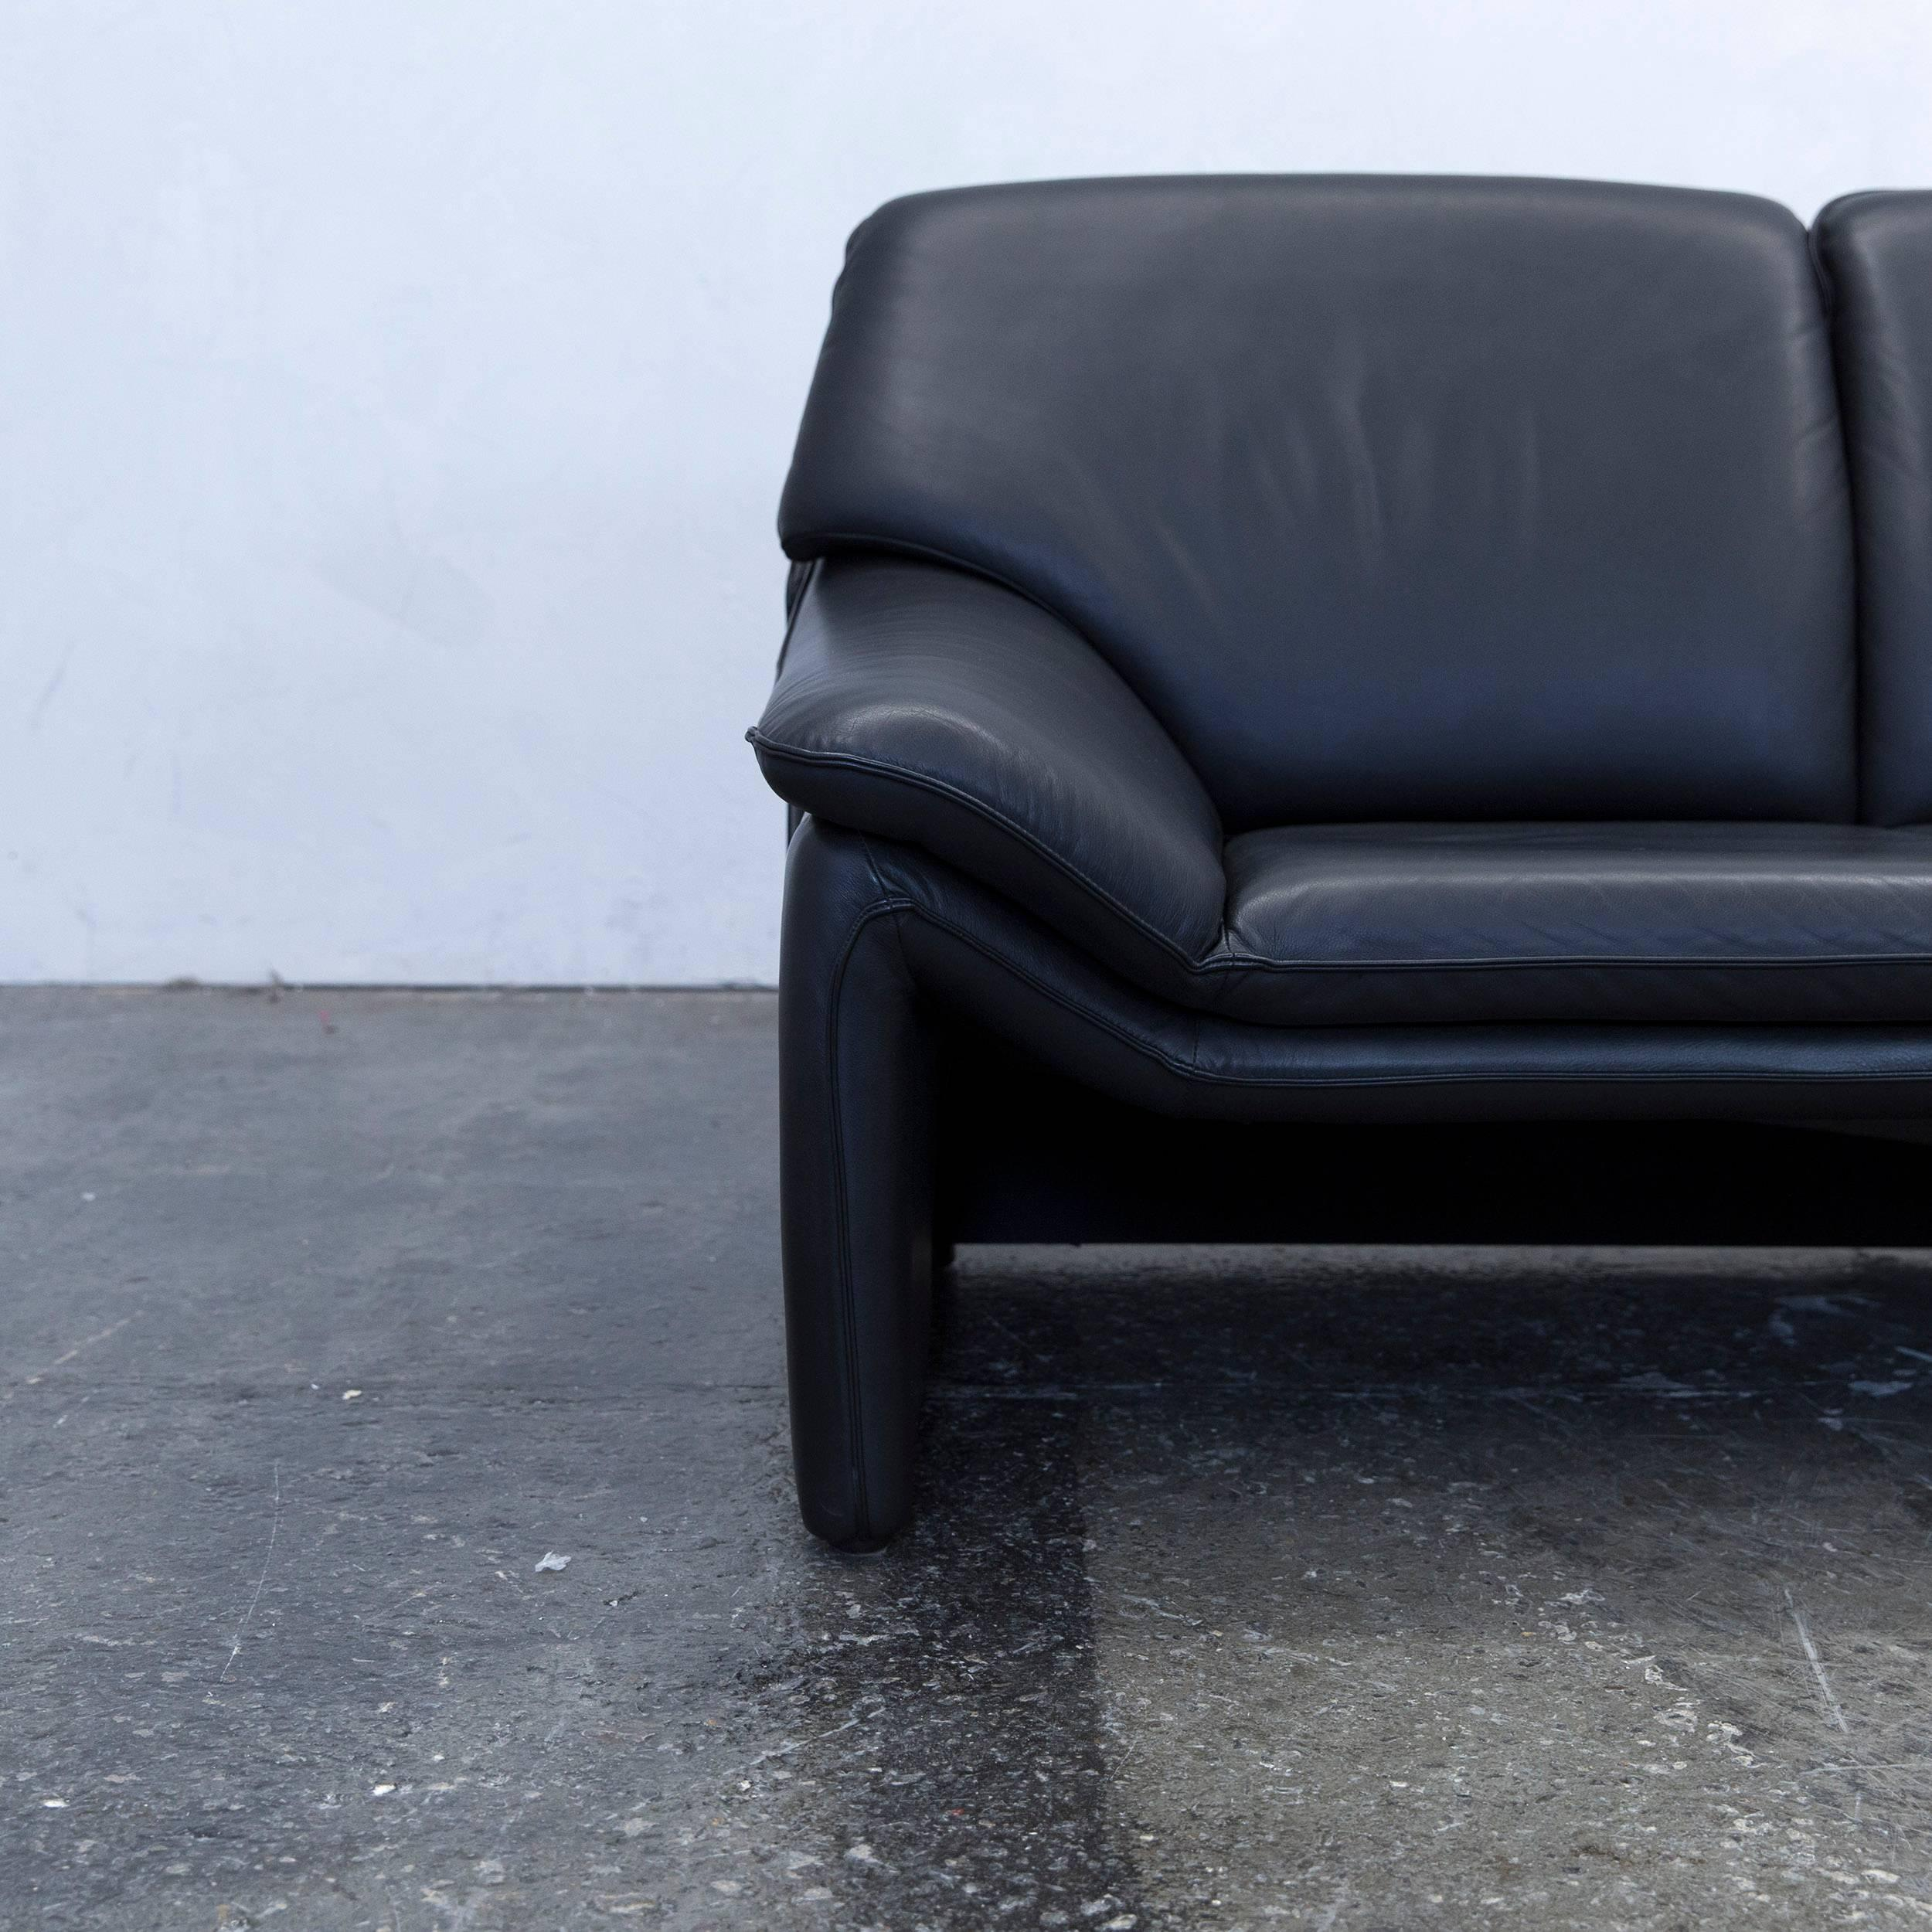 Best Black Colored Original Laauser Atlanta Designer Leather Sofa In A And  Modern Design With Sthle Modern Schwarz